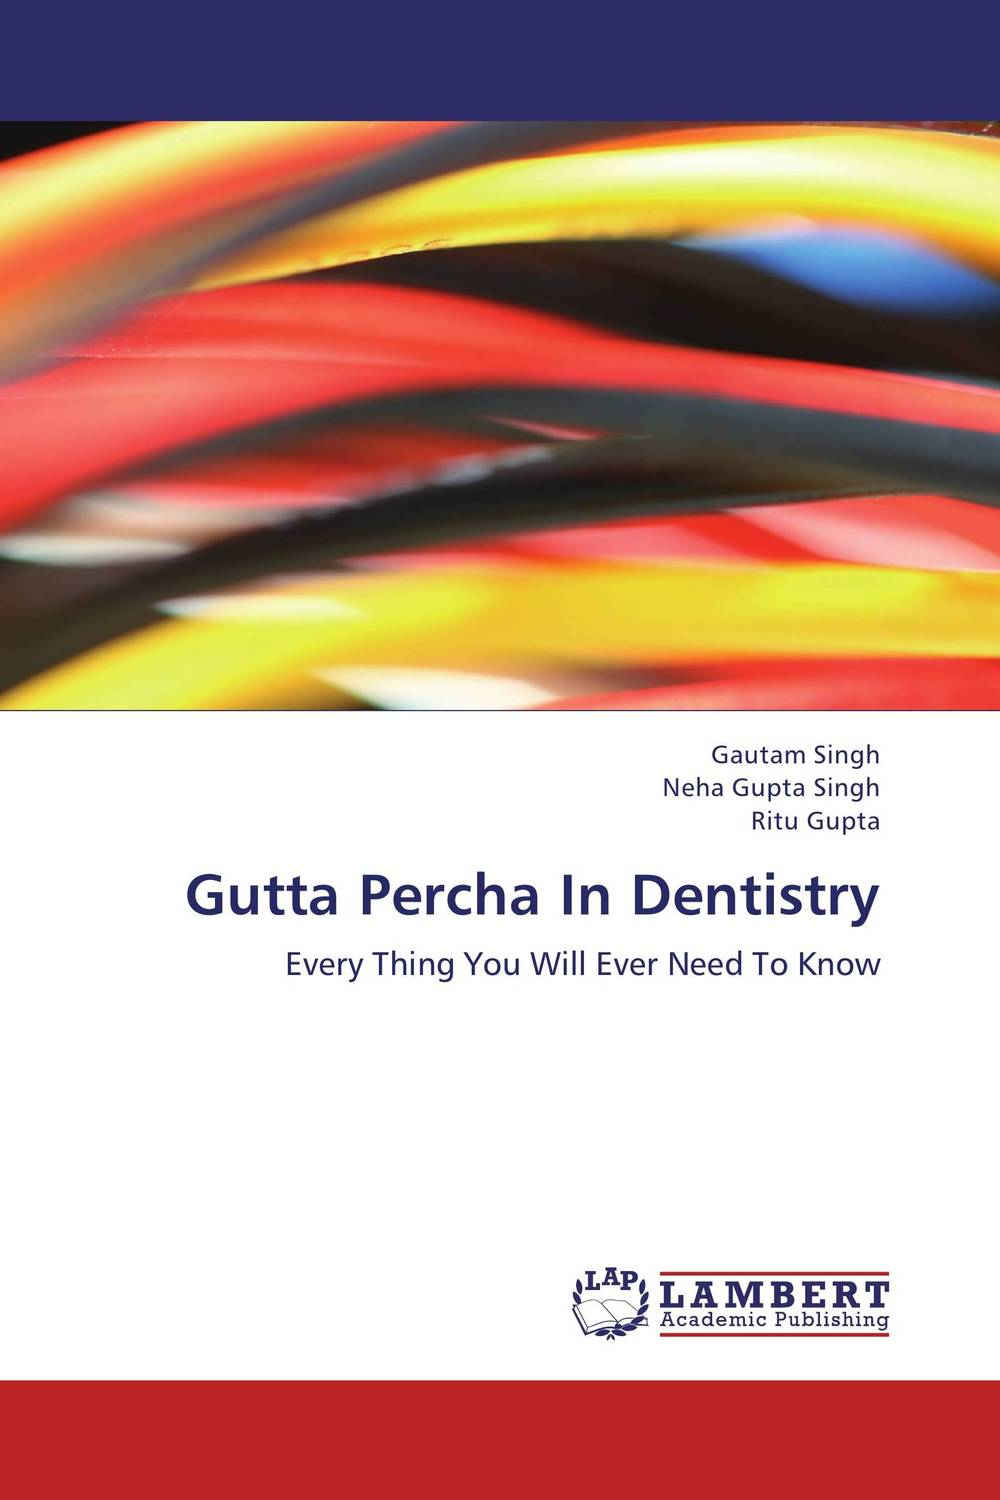 Gutta Percha In Dentistry pci bus demystified